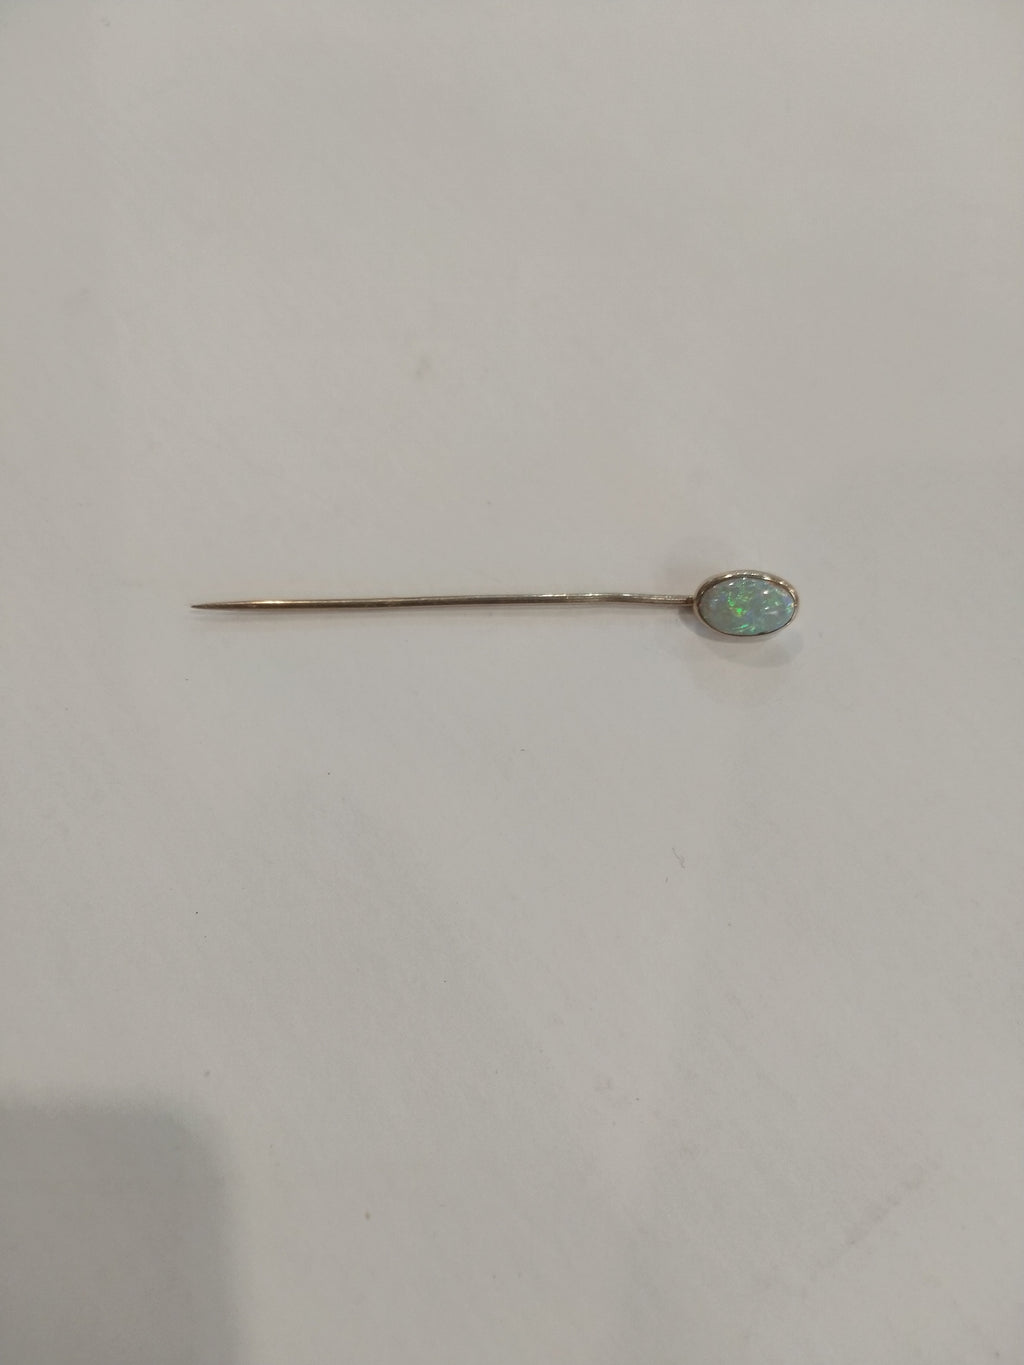 1.03g 10K yellow gold pin with 6.5mm x 9.5 mm oval Opal